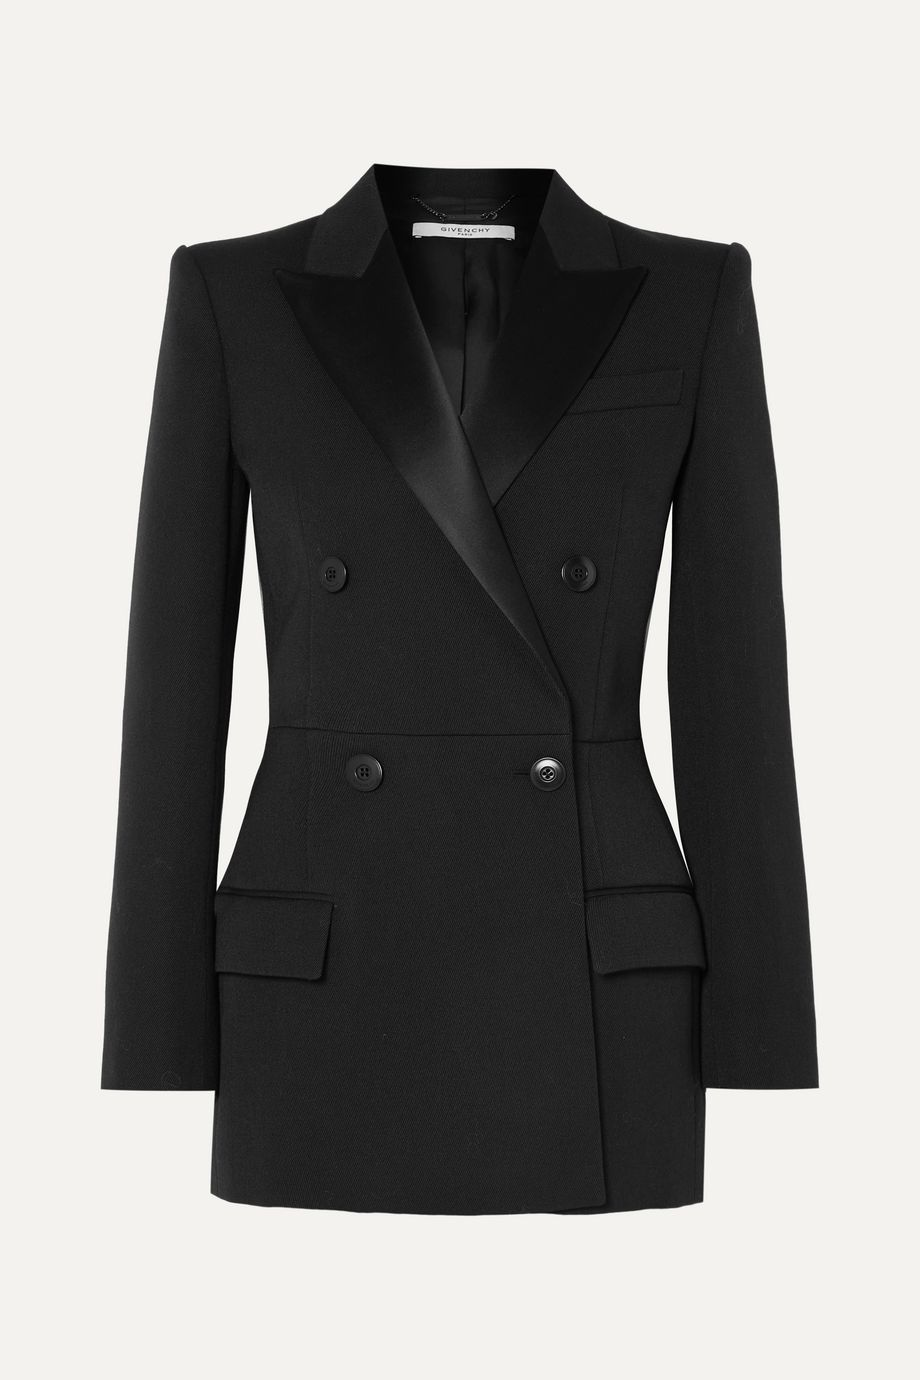 Givenchy Double-breasted satin-trimmed wool-blend twill blazer